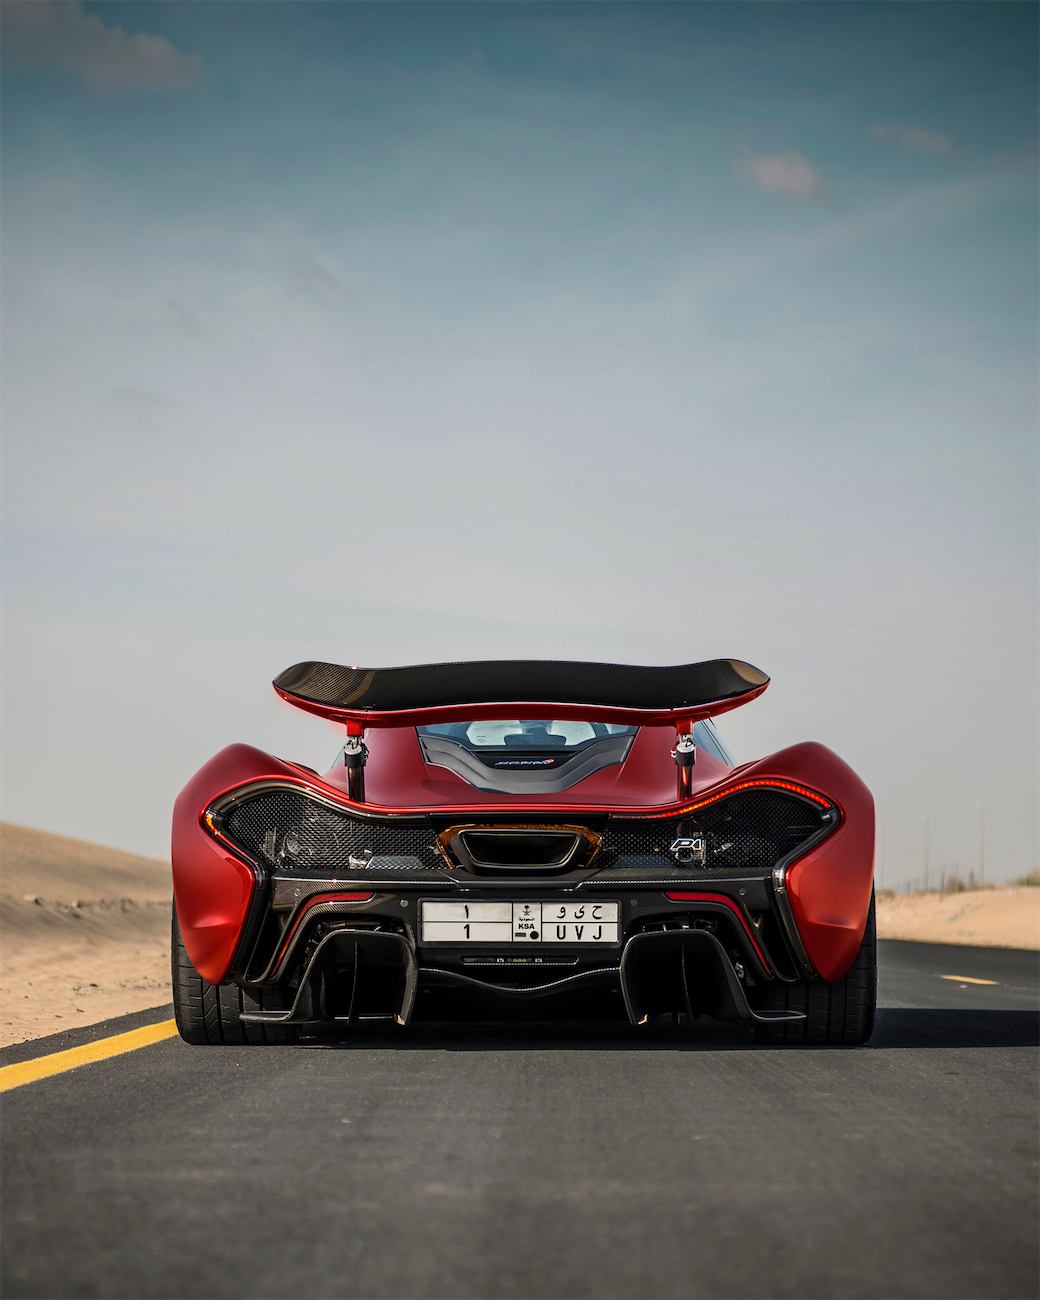 Supercars in the Sand leManoosh industrial design blog and online courses